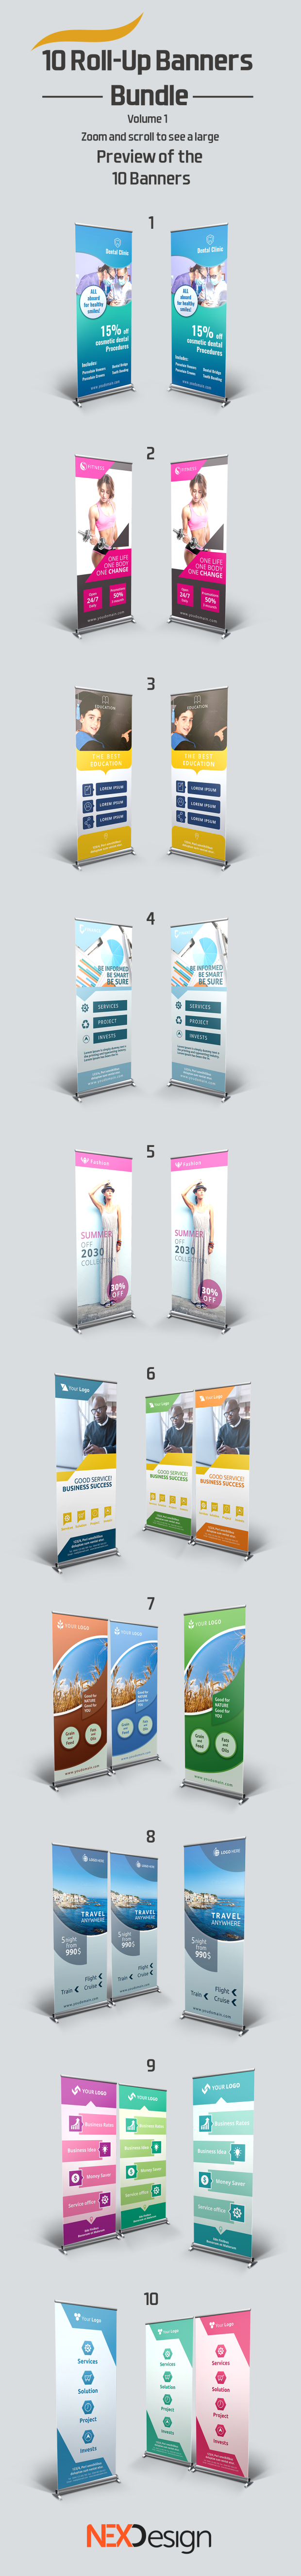 10 Roll-Up Banners Bundle